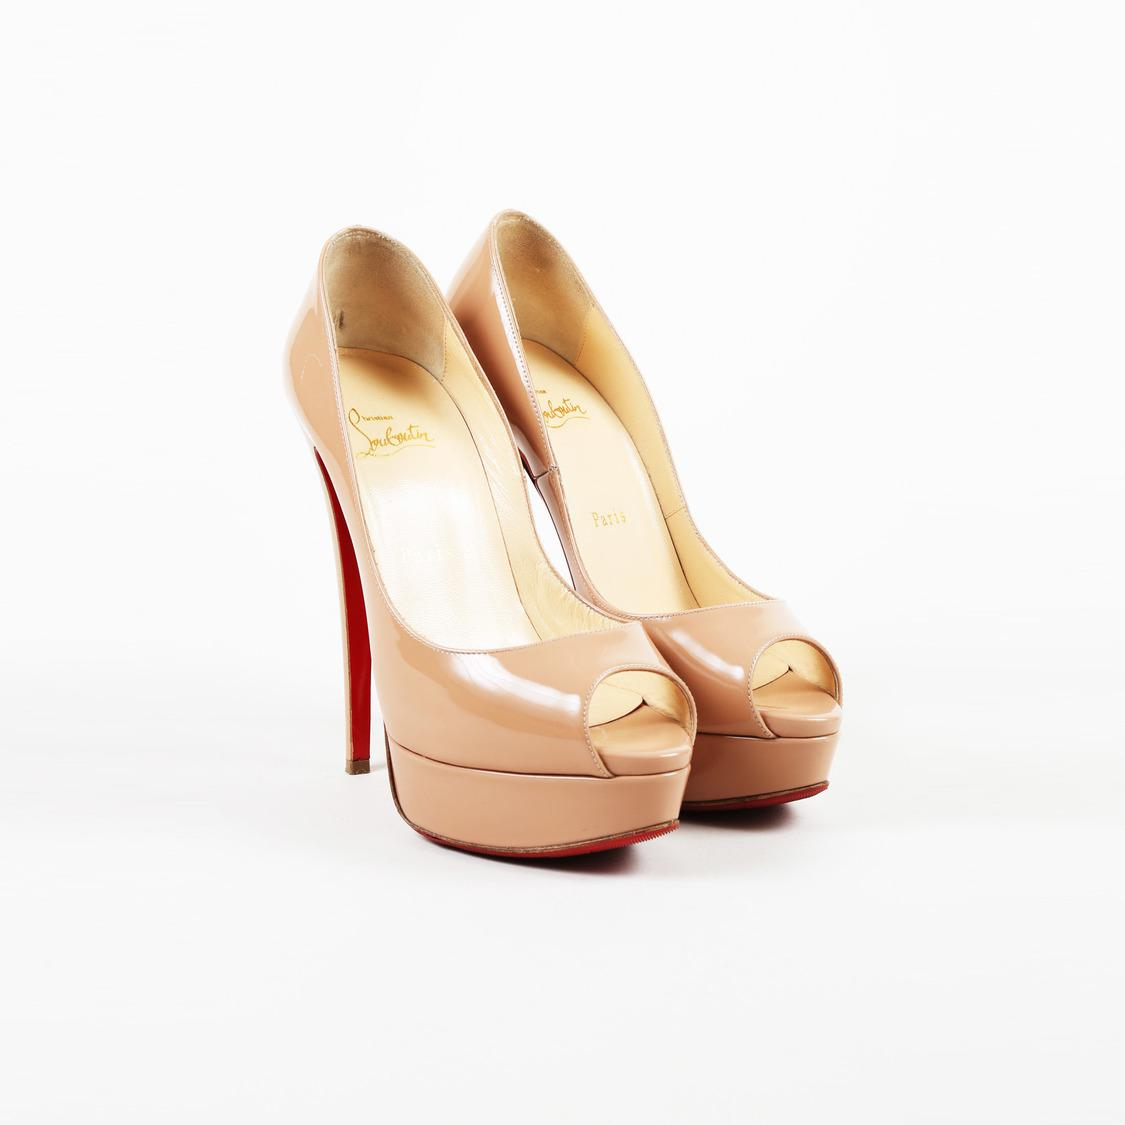 fc9e93ae5122 Christian Louboutin. Women s Natural Nude Patent Leather